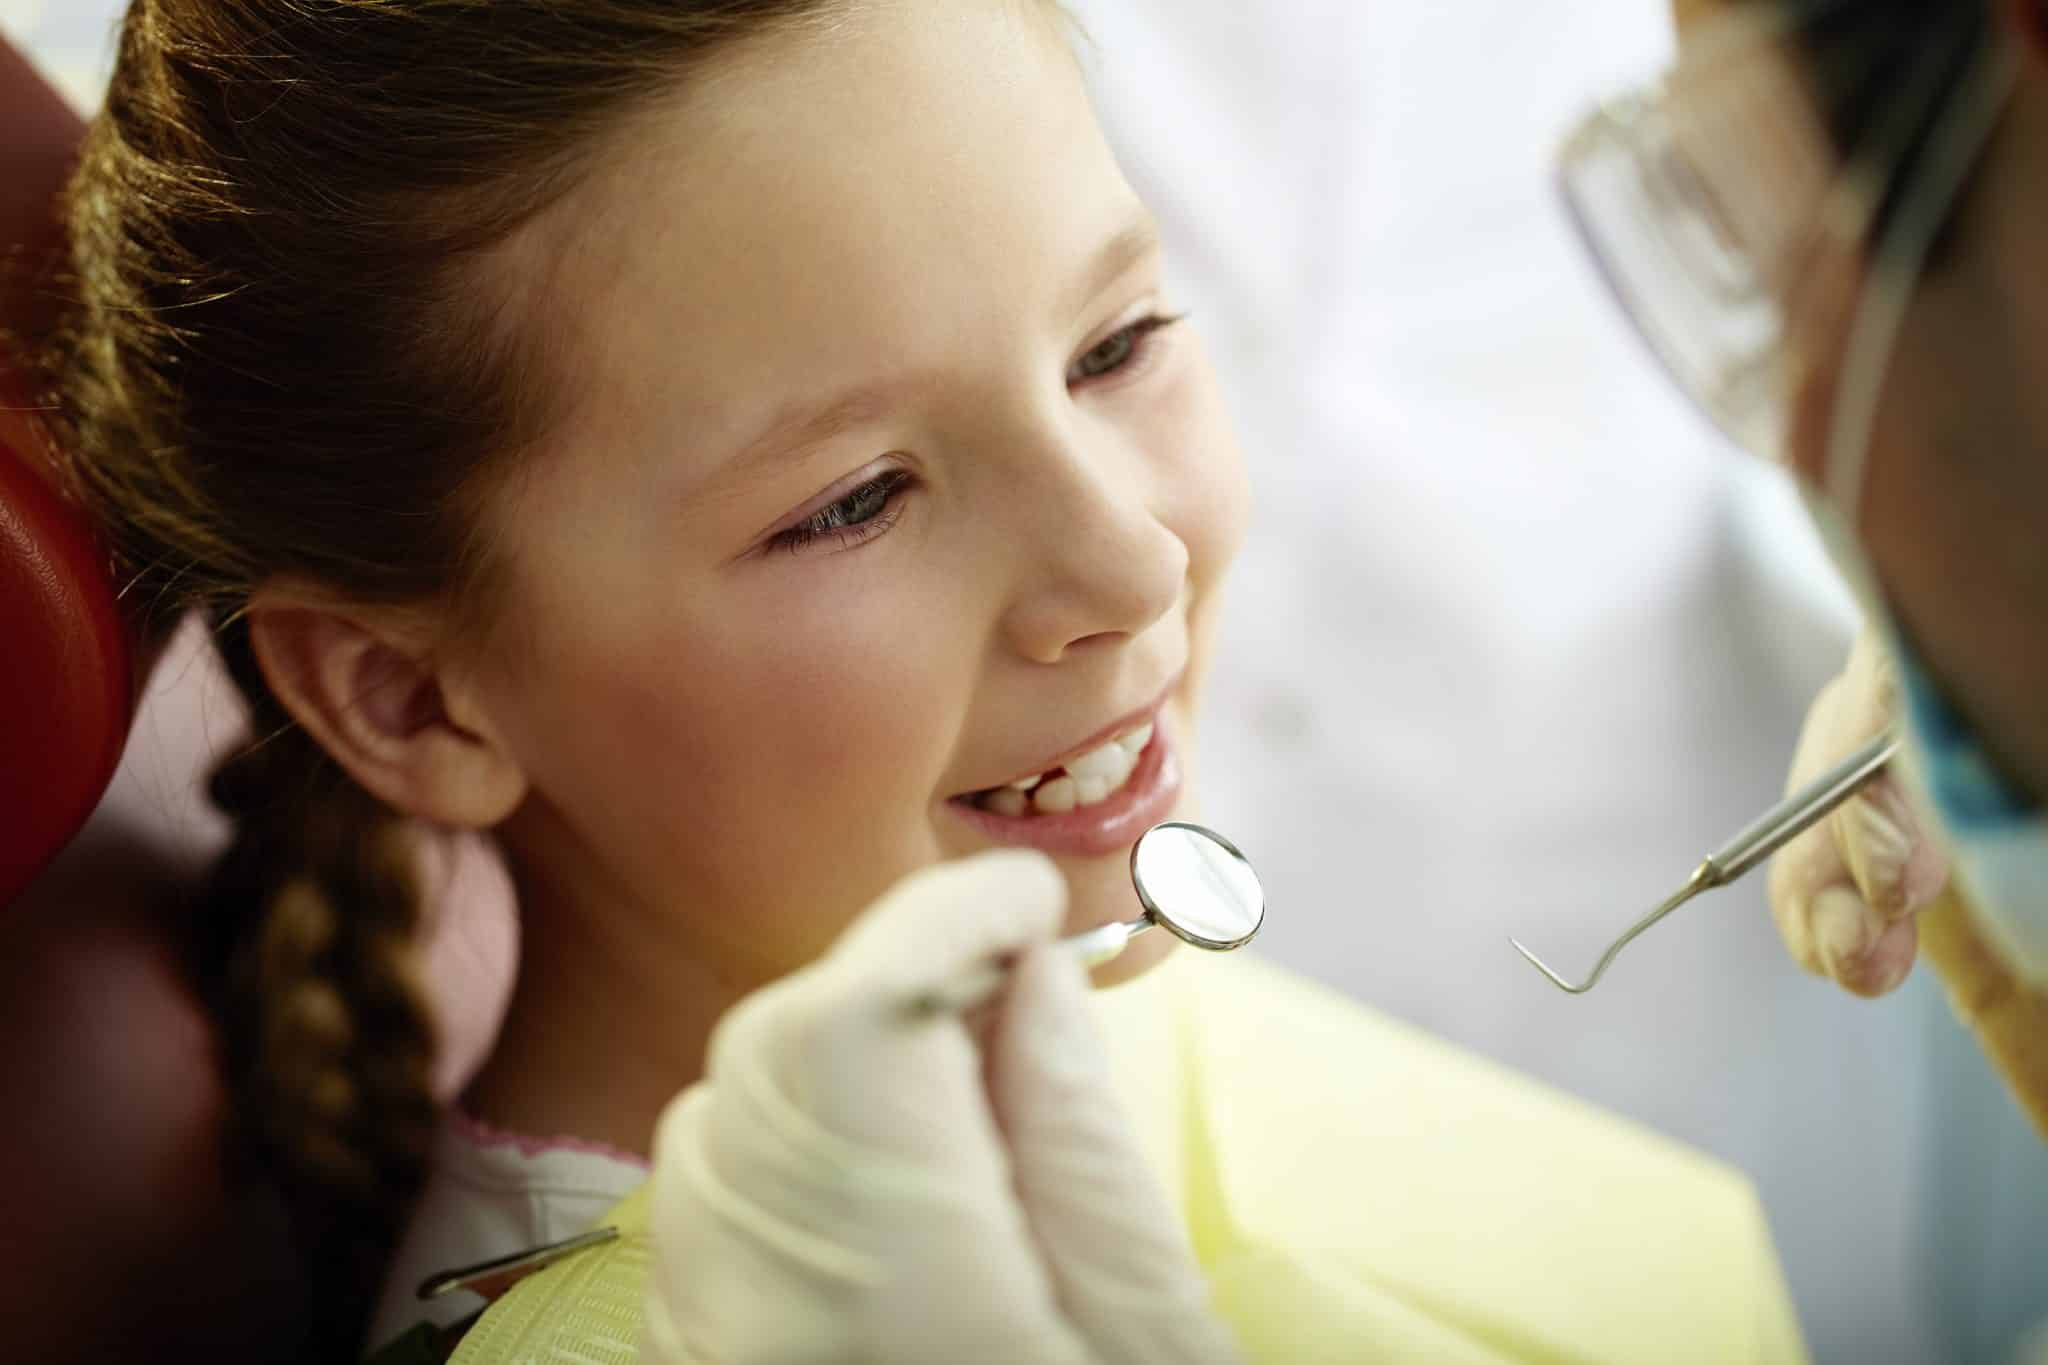 5 Ways to Make Teeth Cleaning Fun for Kids